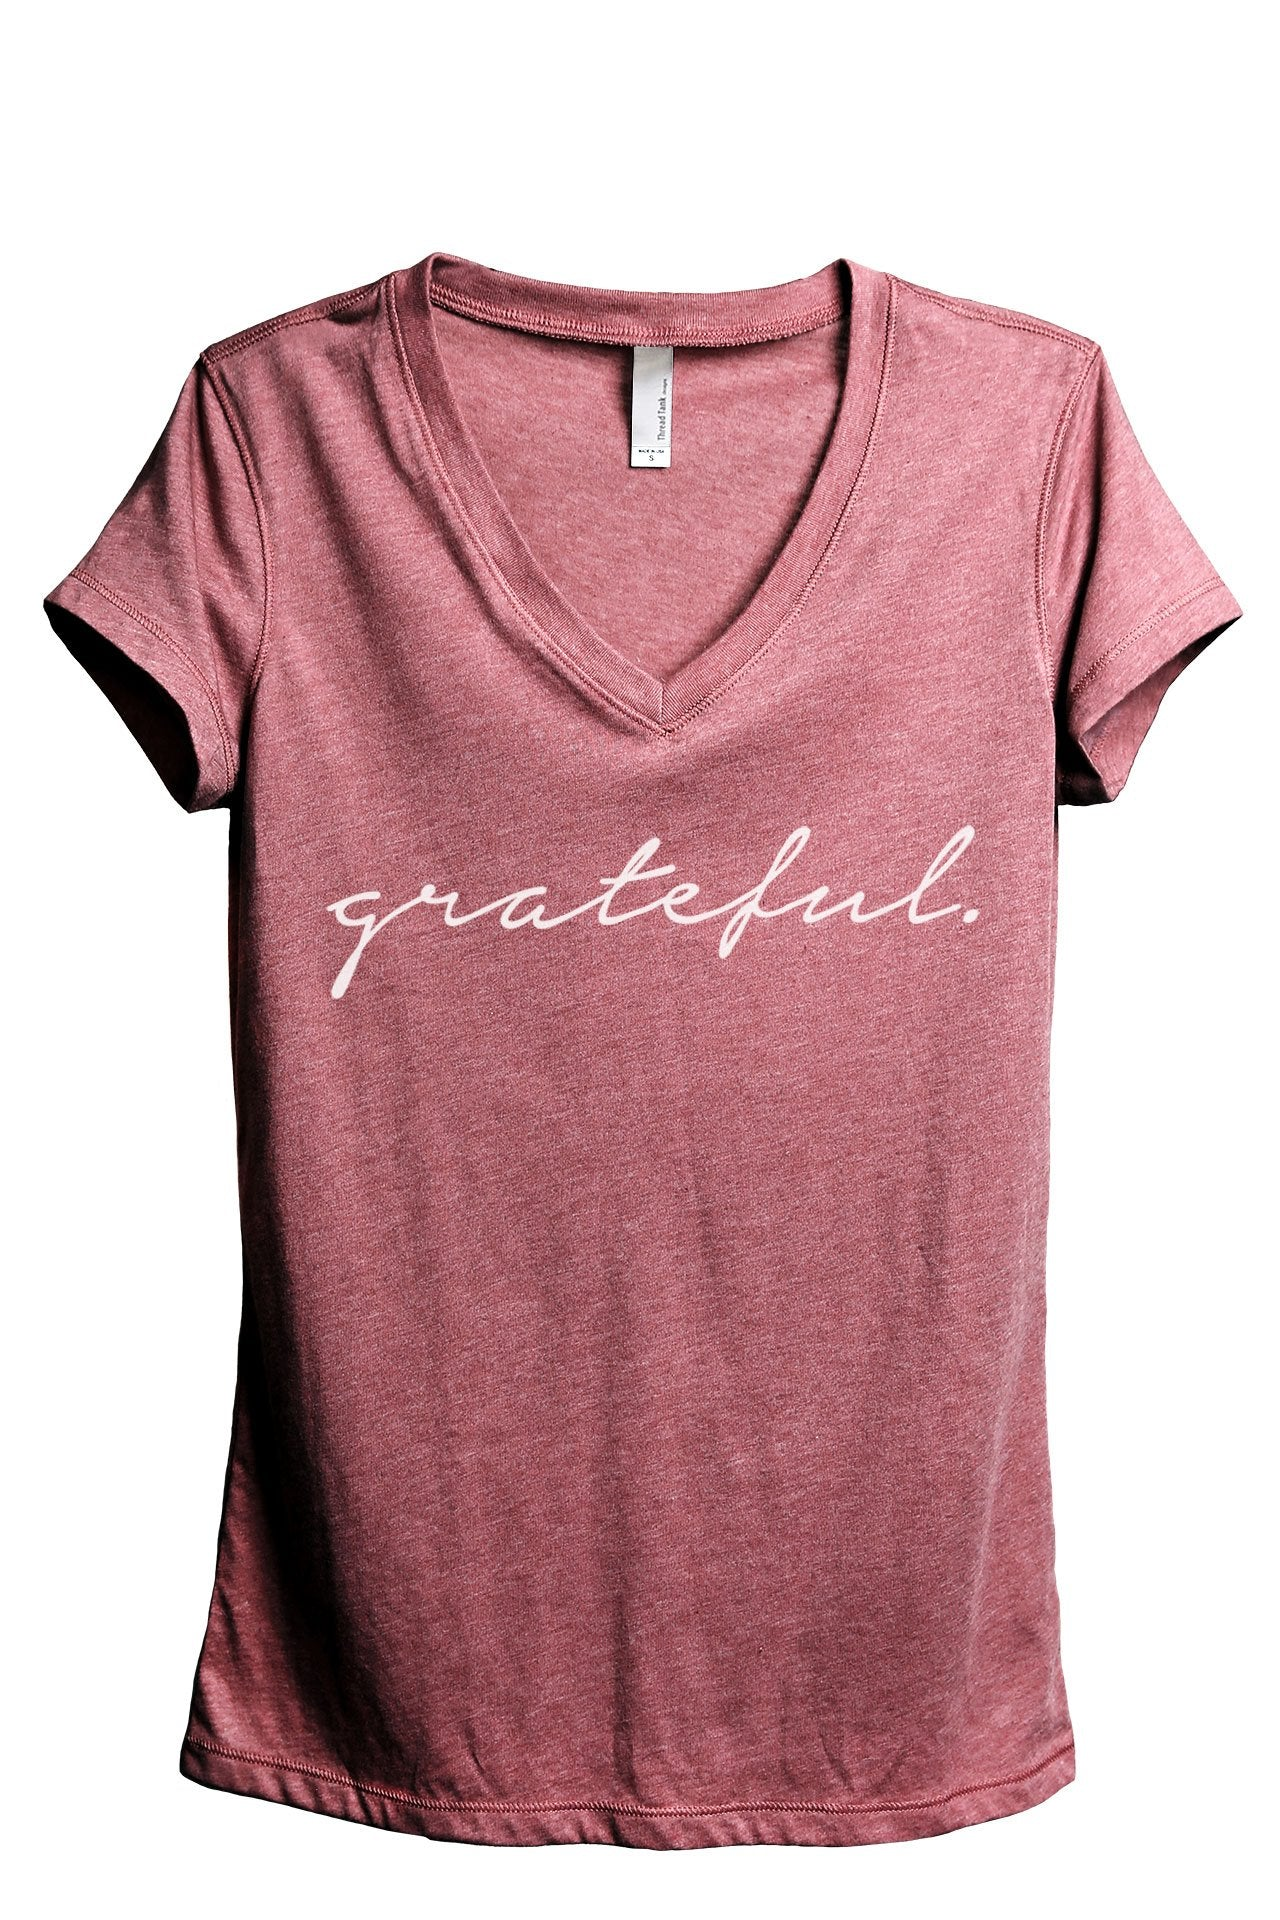 Grateful Women's Relaxed V-Neck T-Shirt Tee Heather Black